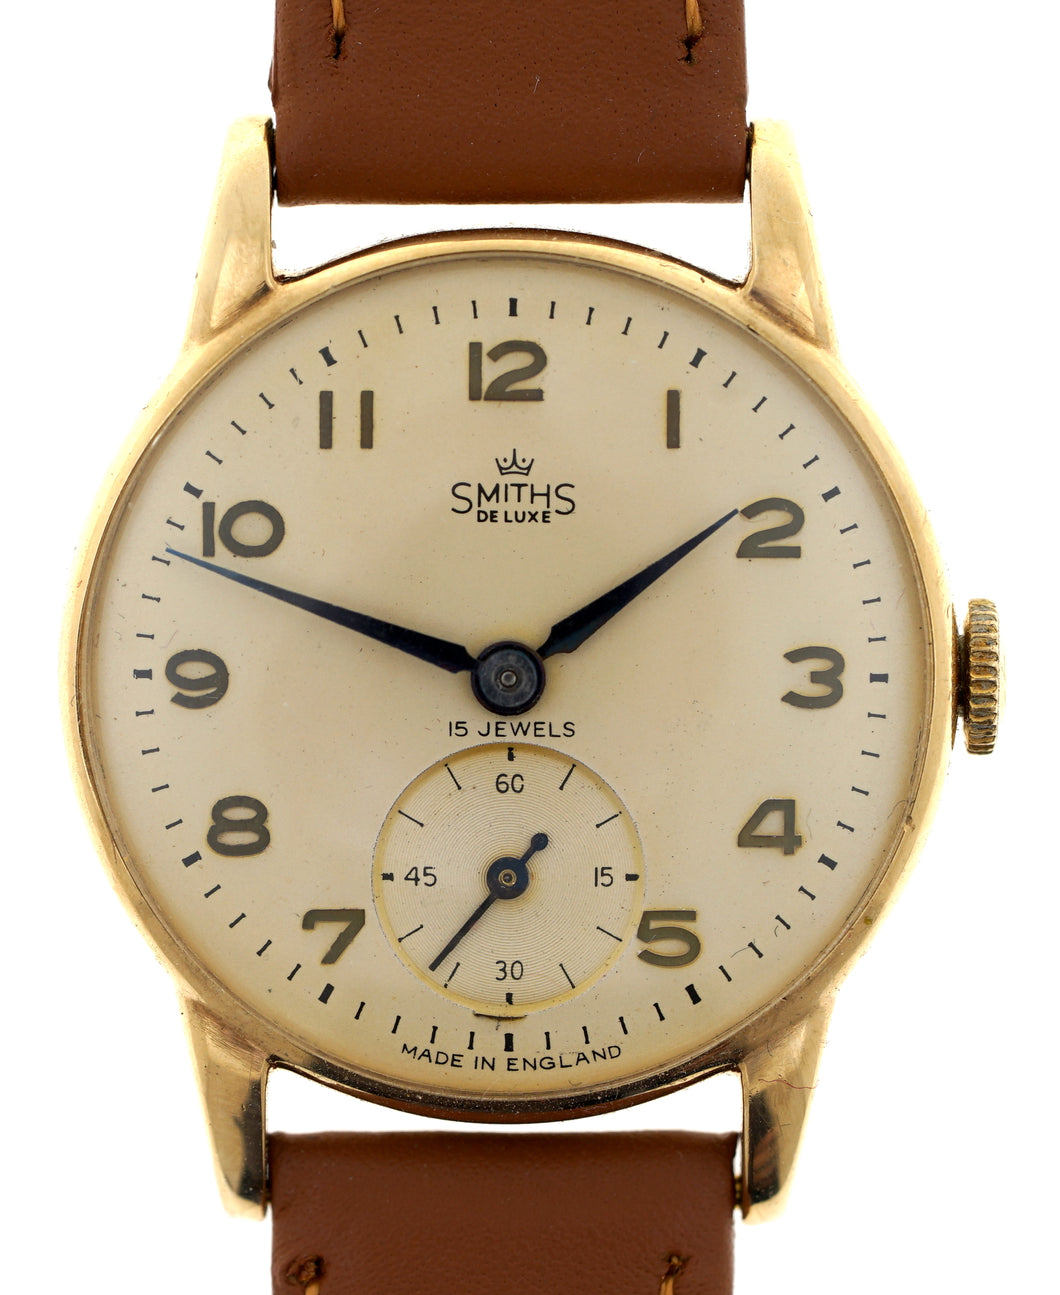 Copy of DELUXE SMITHS 9CT GOLD BRITISH RAIL WRISTWATCH IN GOOD CONDITION c 1957